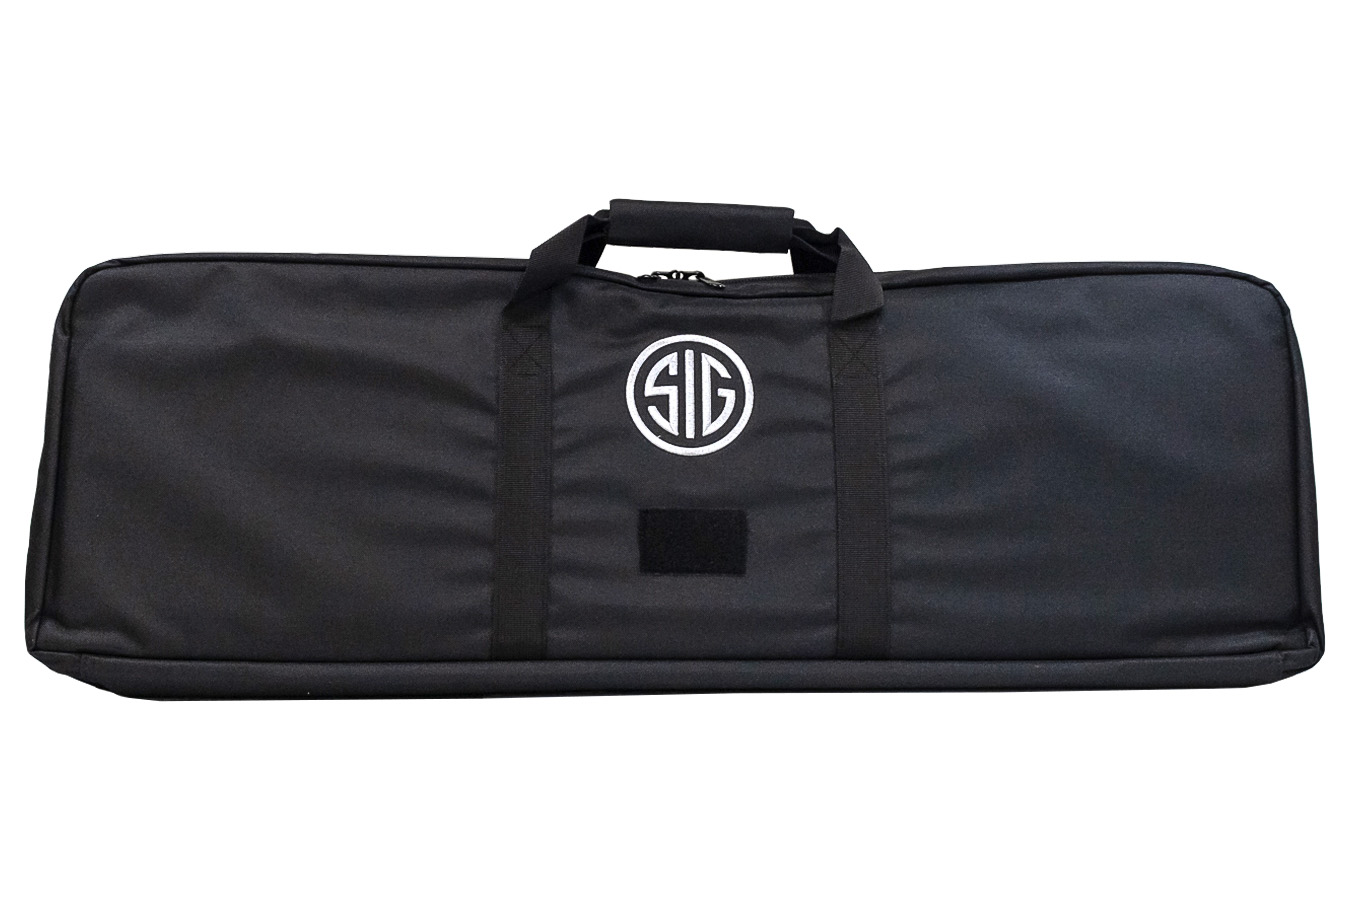 SIG SAUER RIFLE BAG SYSTEM 36 IN BLACK